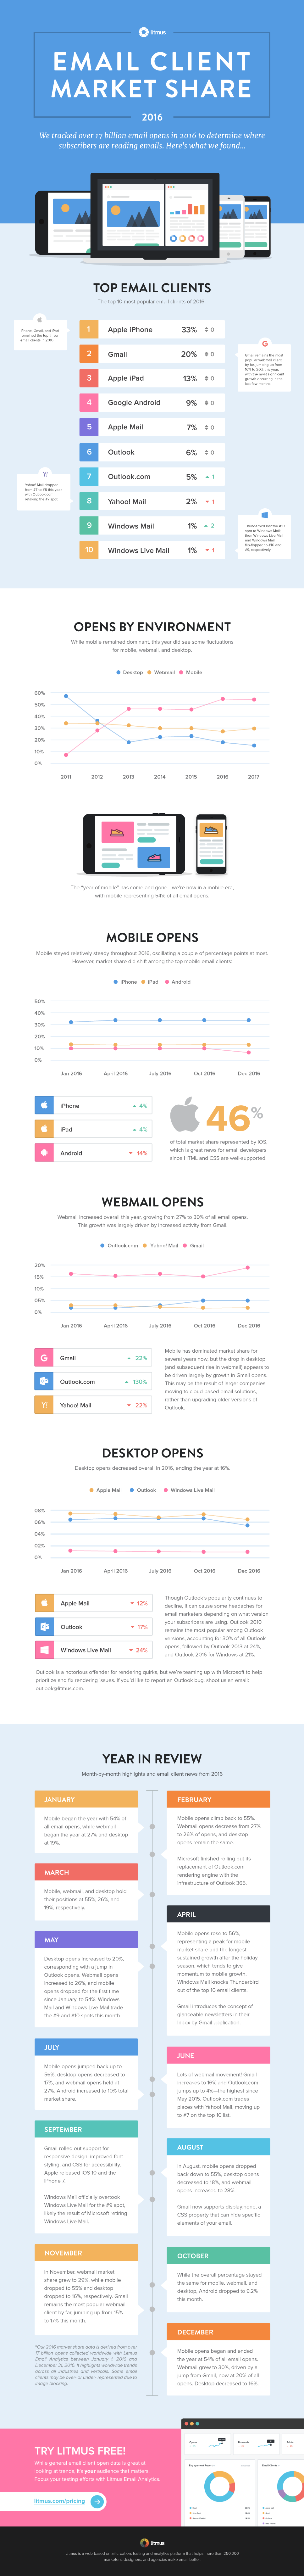 Email-Client-Market-Share-2016